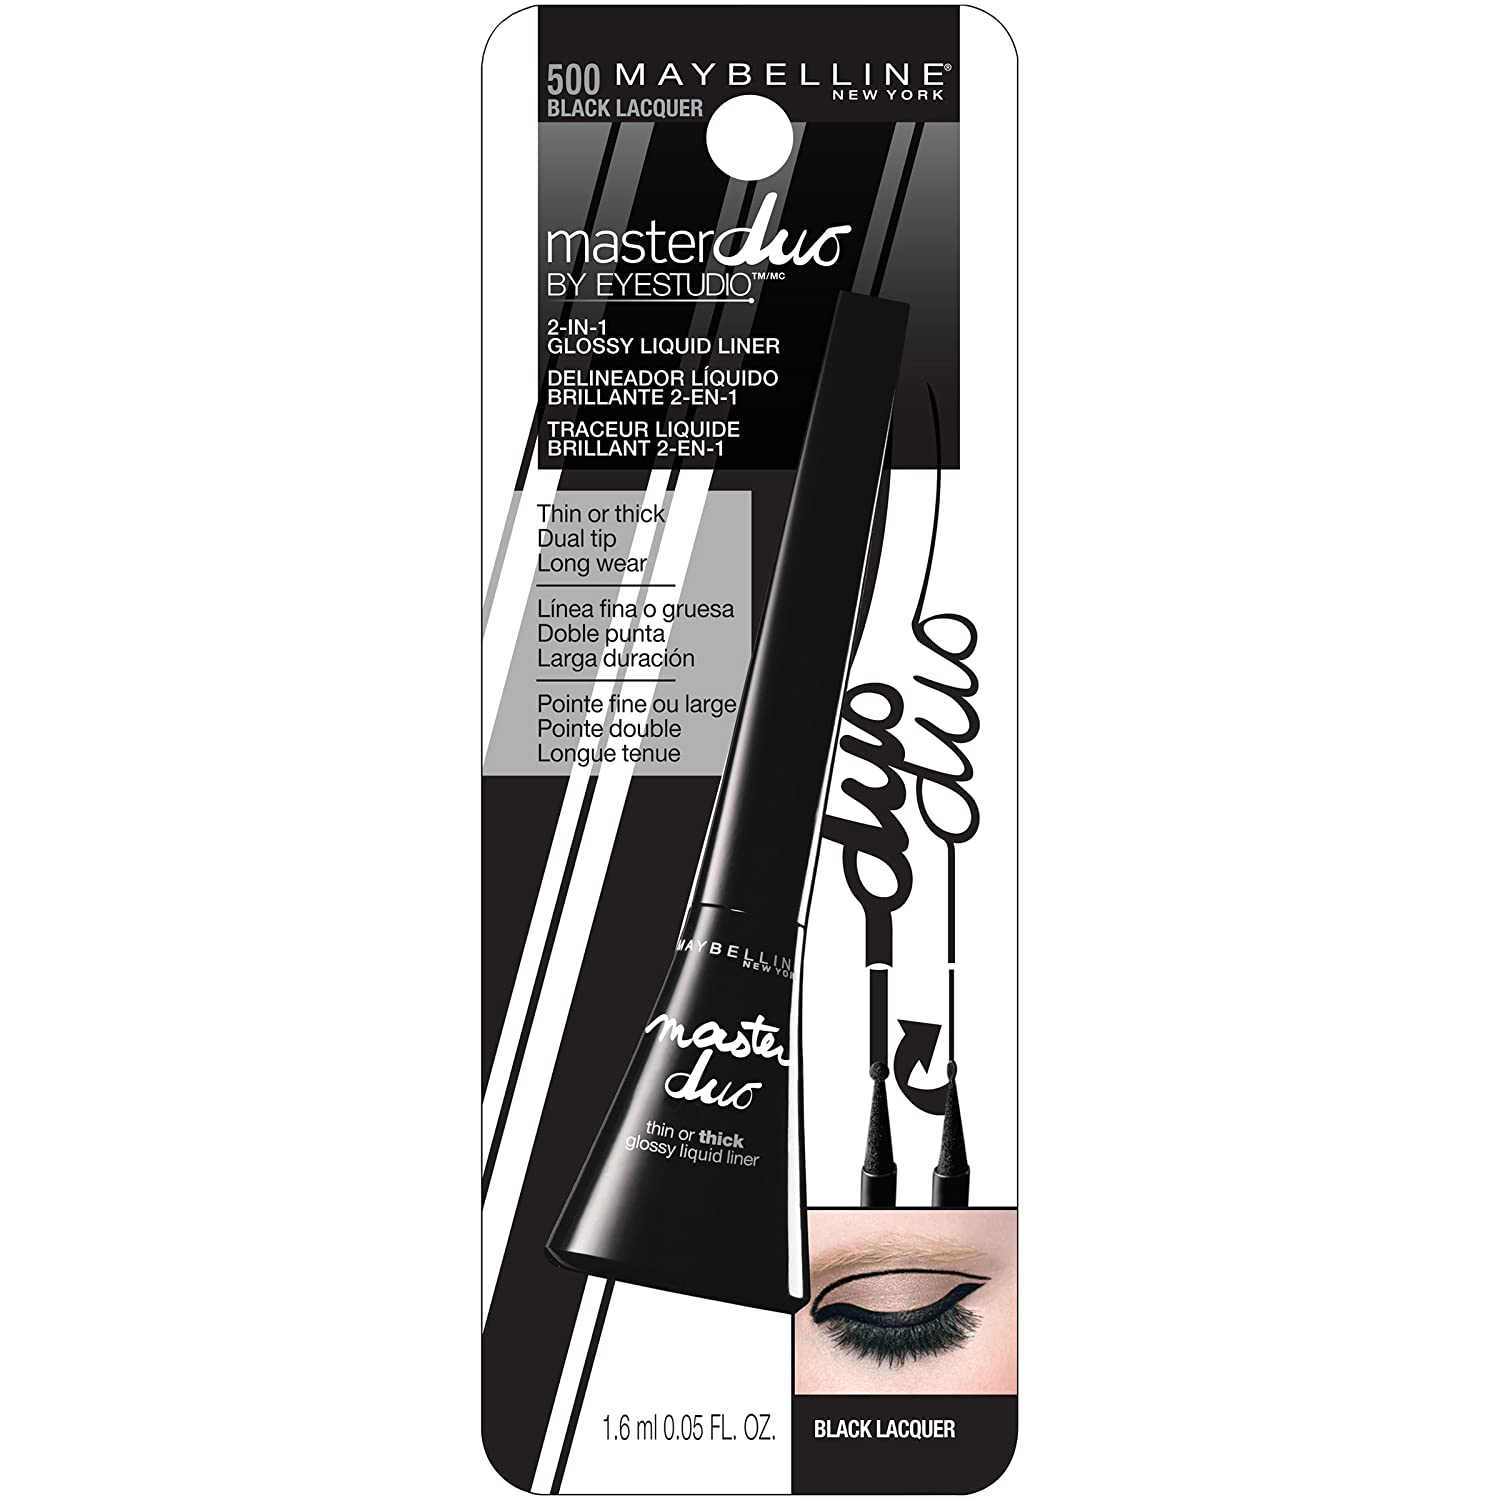 Buy Maybelline Eye Studio Master Duo Glossy Liquid Liner Black Hyper Eyeliner Lacquer 14ml Online At Low Prices In India